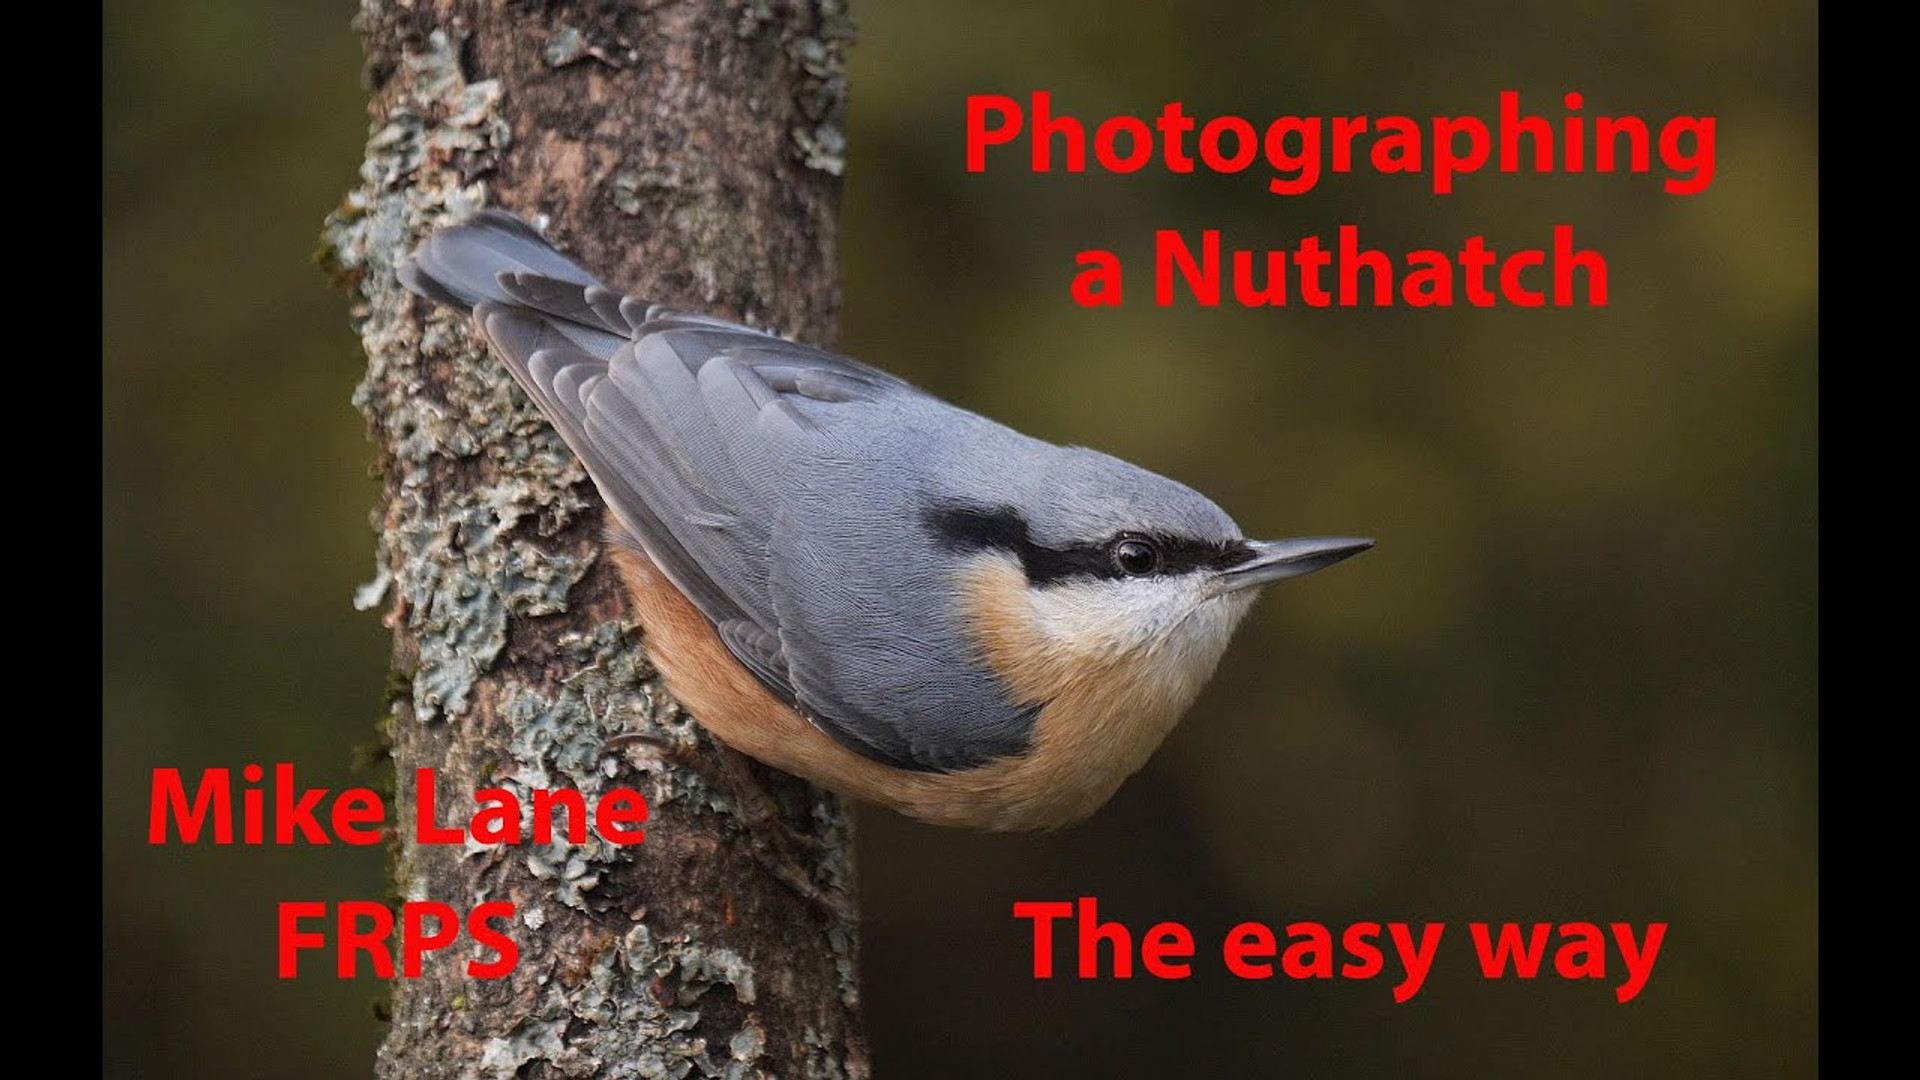 Photographing a Nuthatch